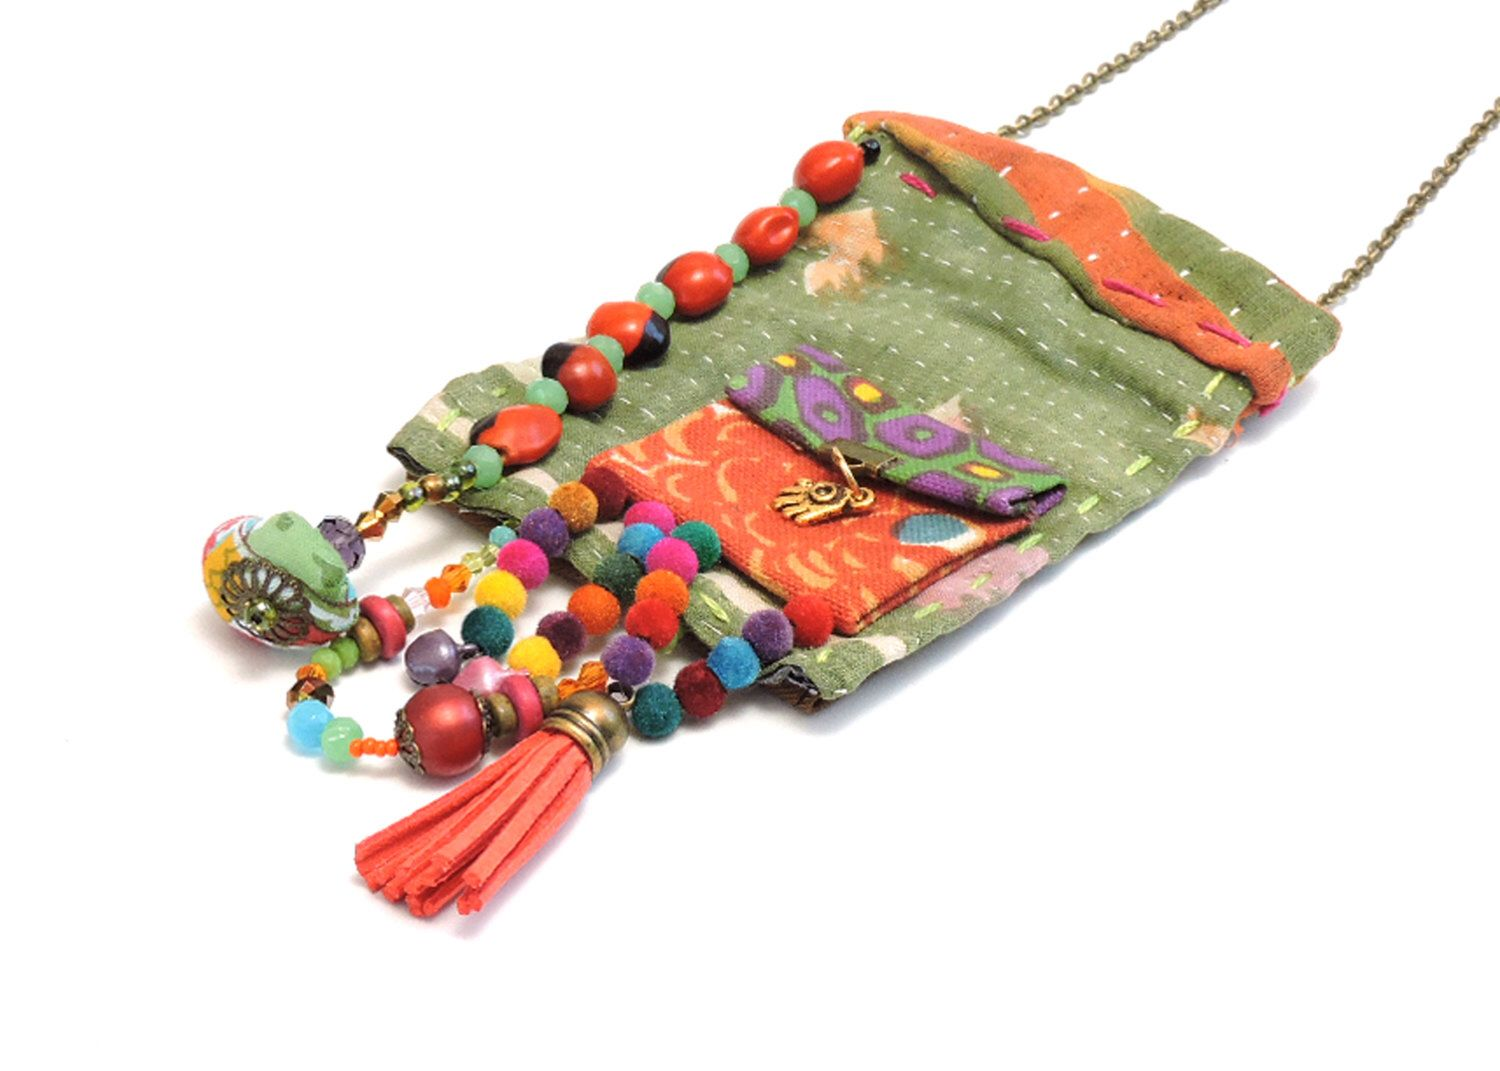 green shop livemaster fabric textile imurane necklace on item dark online damapik